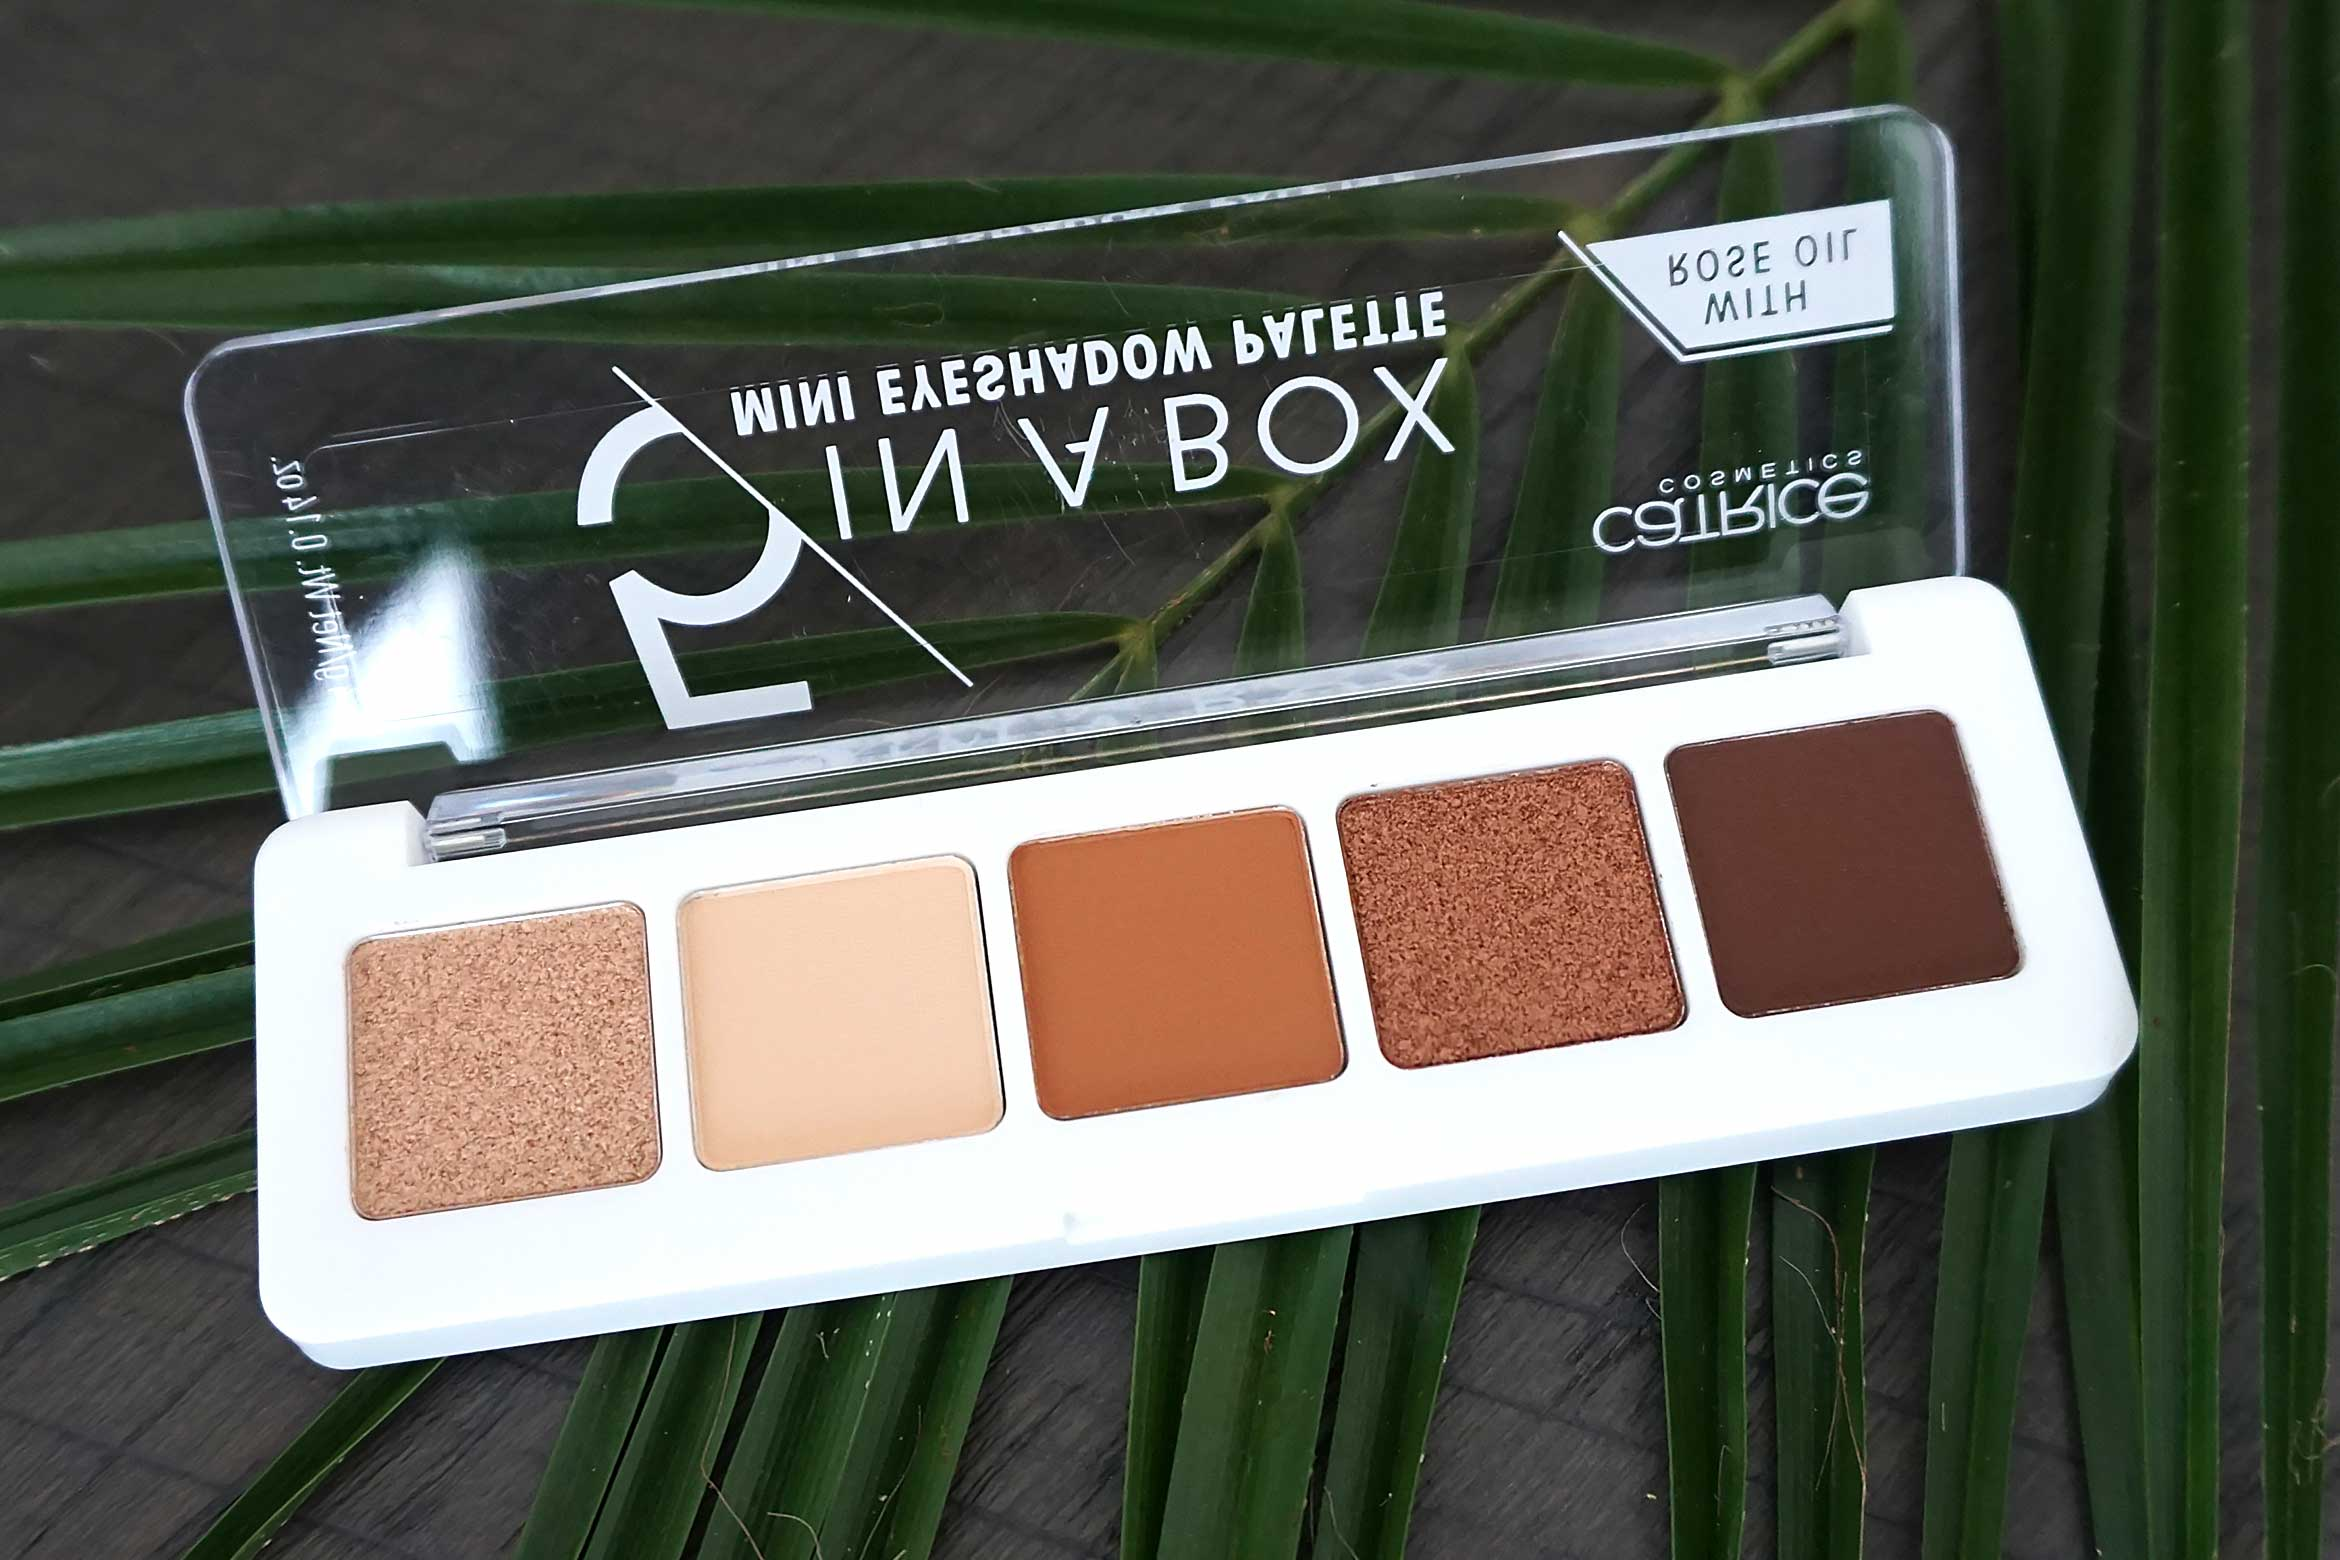 catrice 5 in a box mini eyeshadow palette review 030 warm spice look